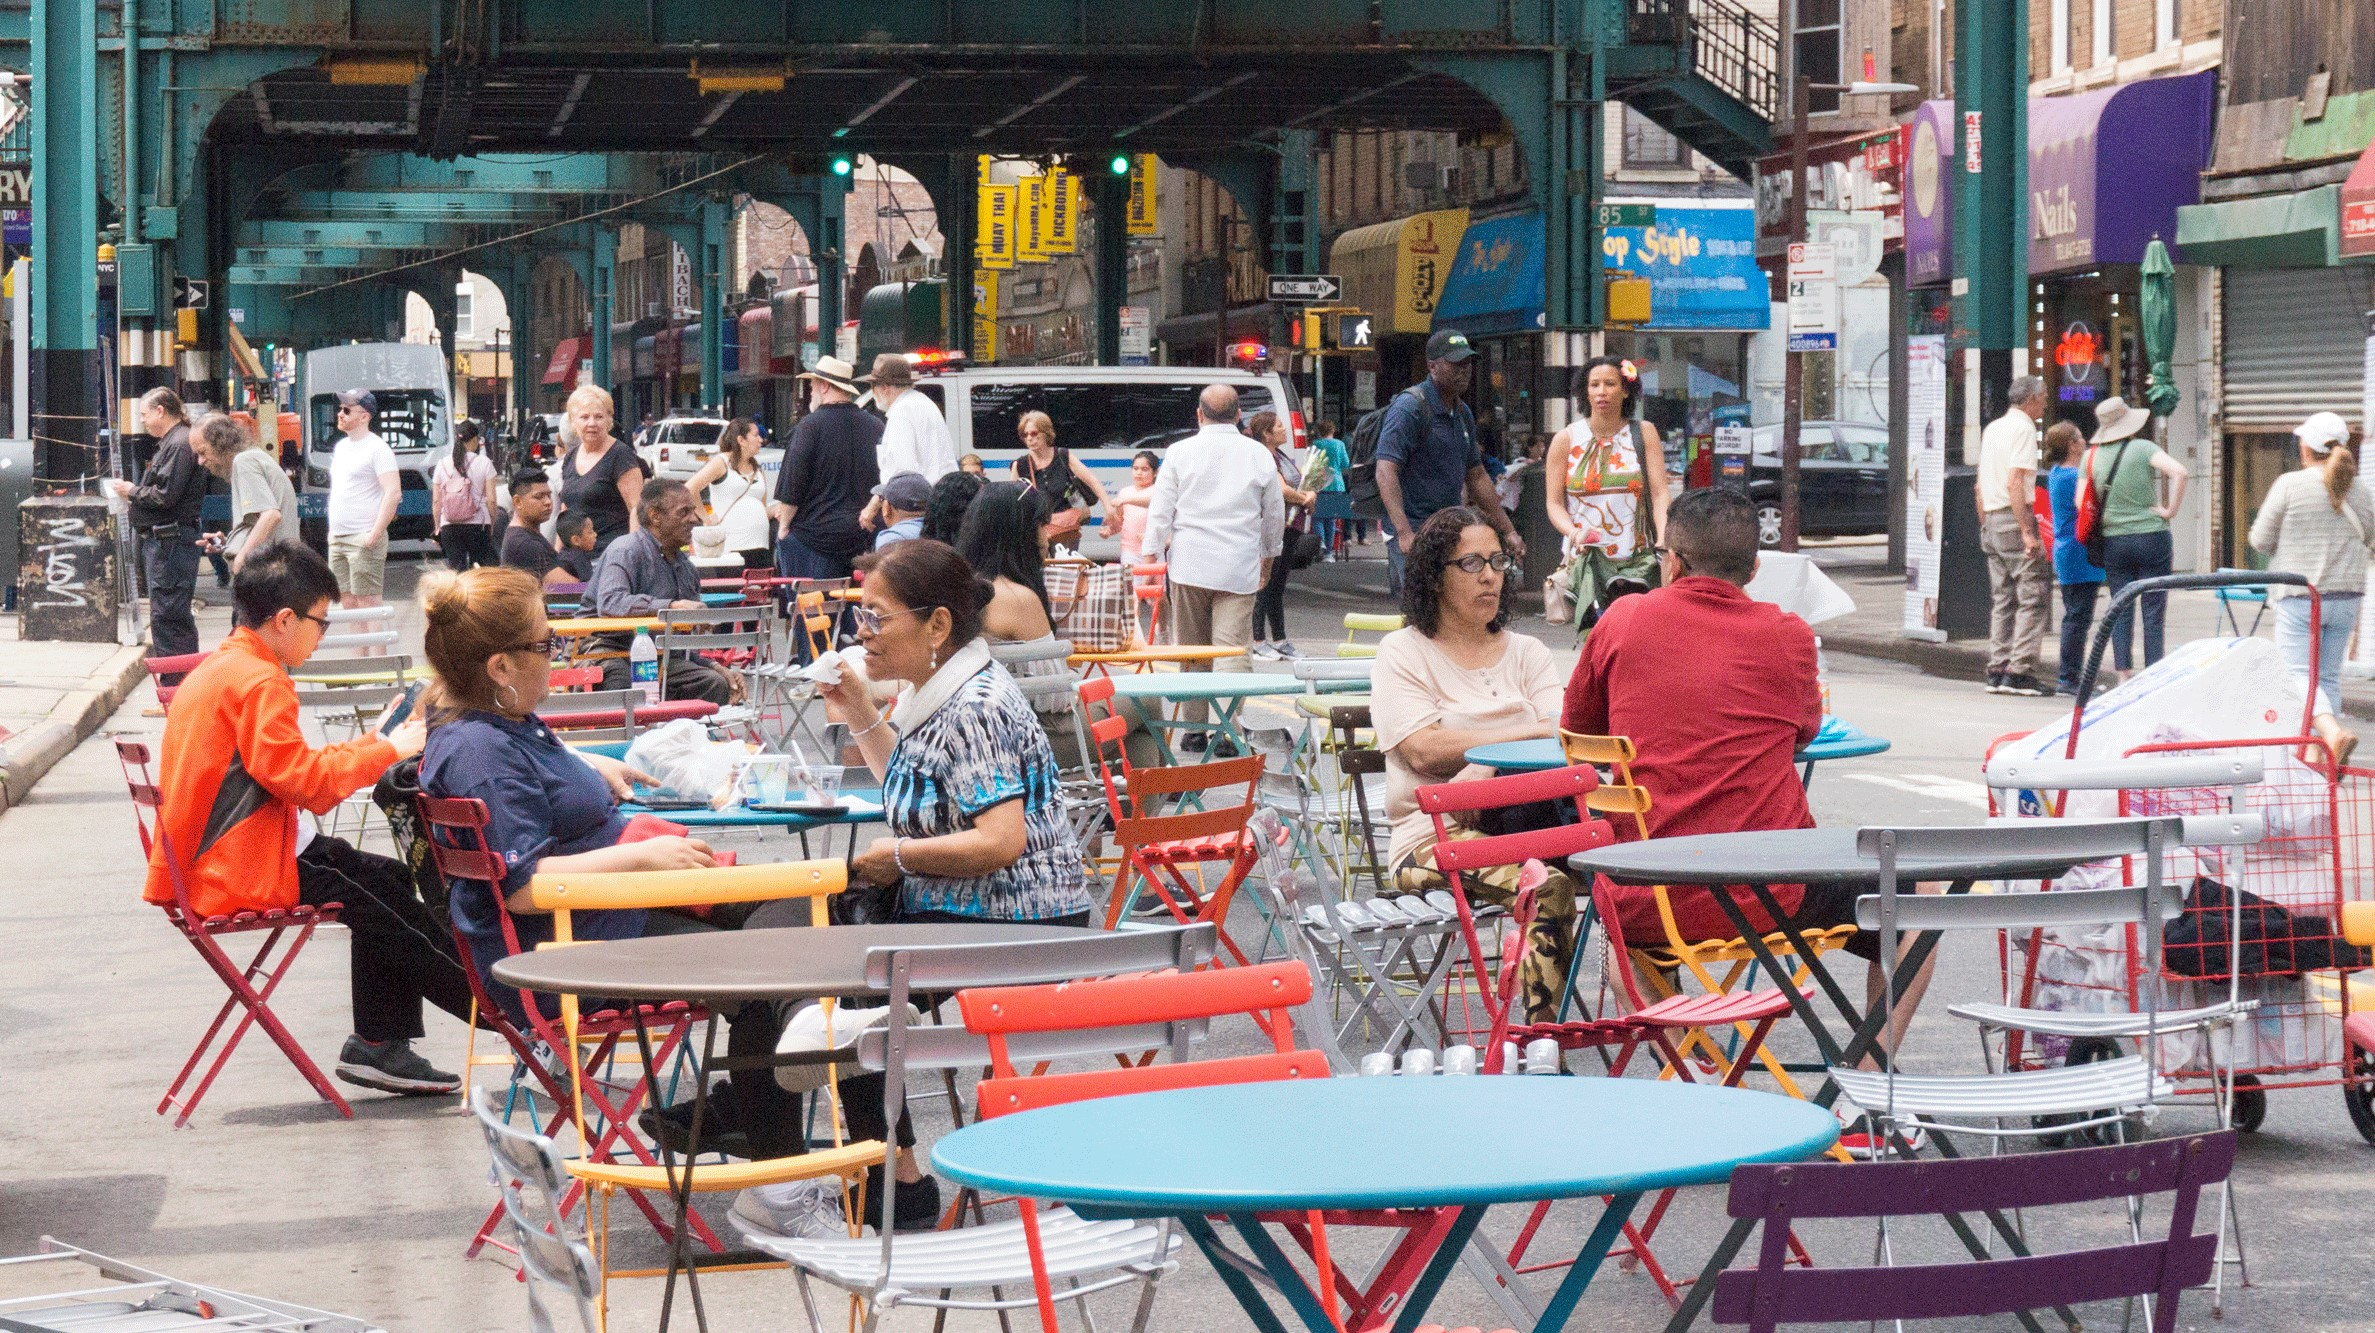 street scene with people seated at community tables under an elevated train track